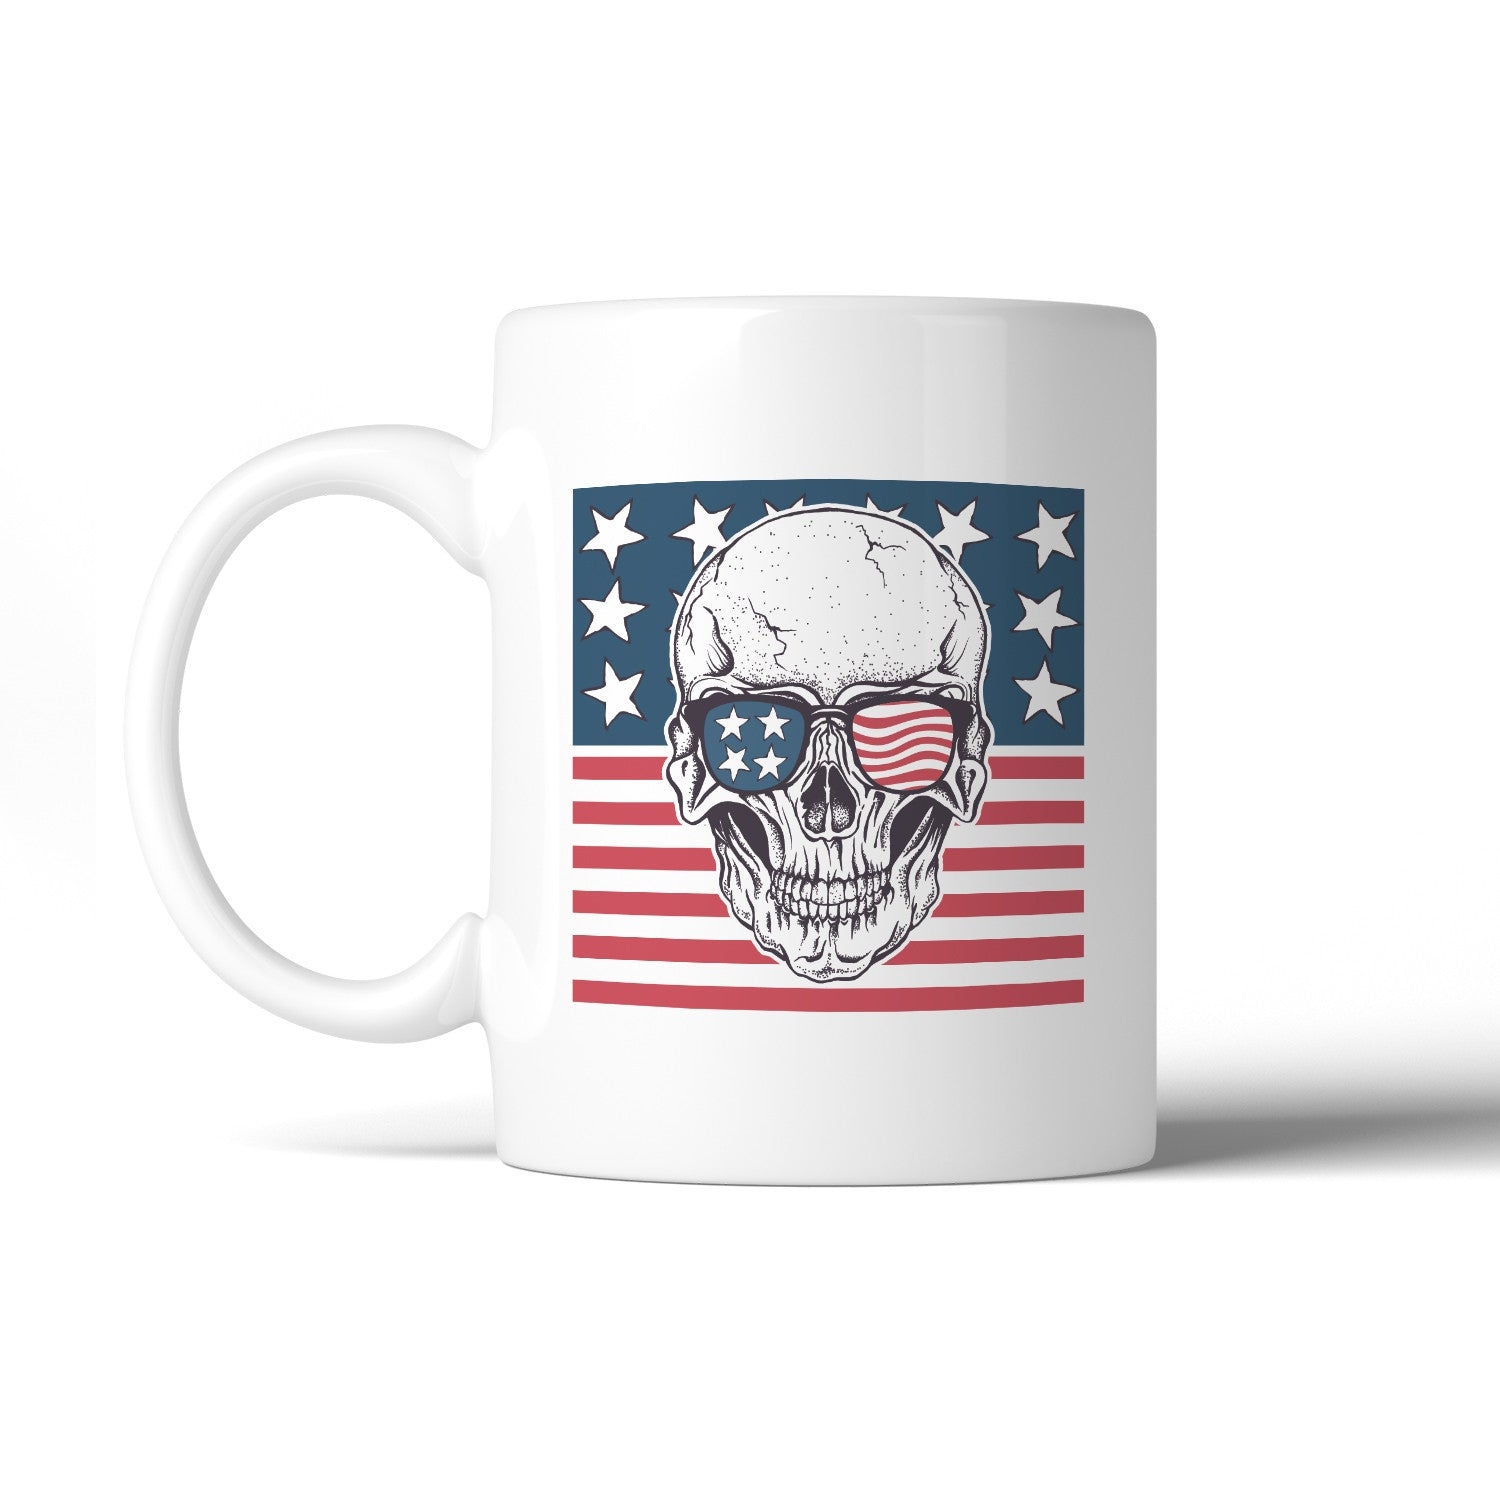 Skull american flag design coffee mug microwave dishwasher safe skull american flag design coffee mug microwave dishwasher safe biocorpaavc Images